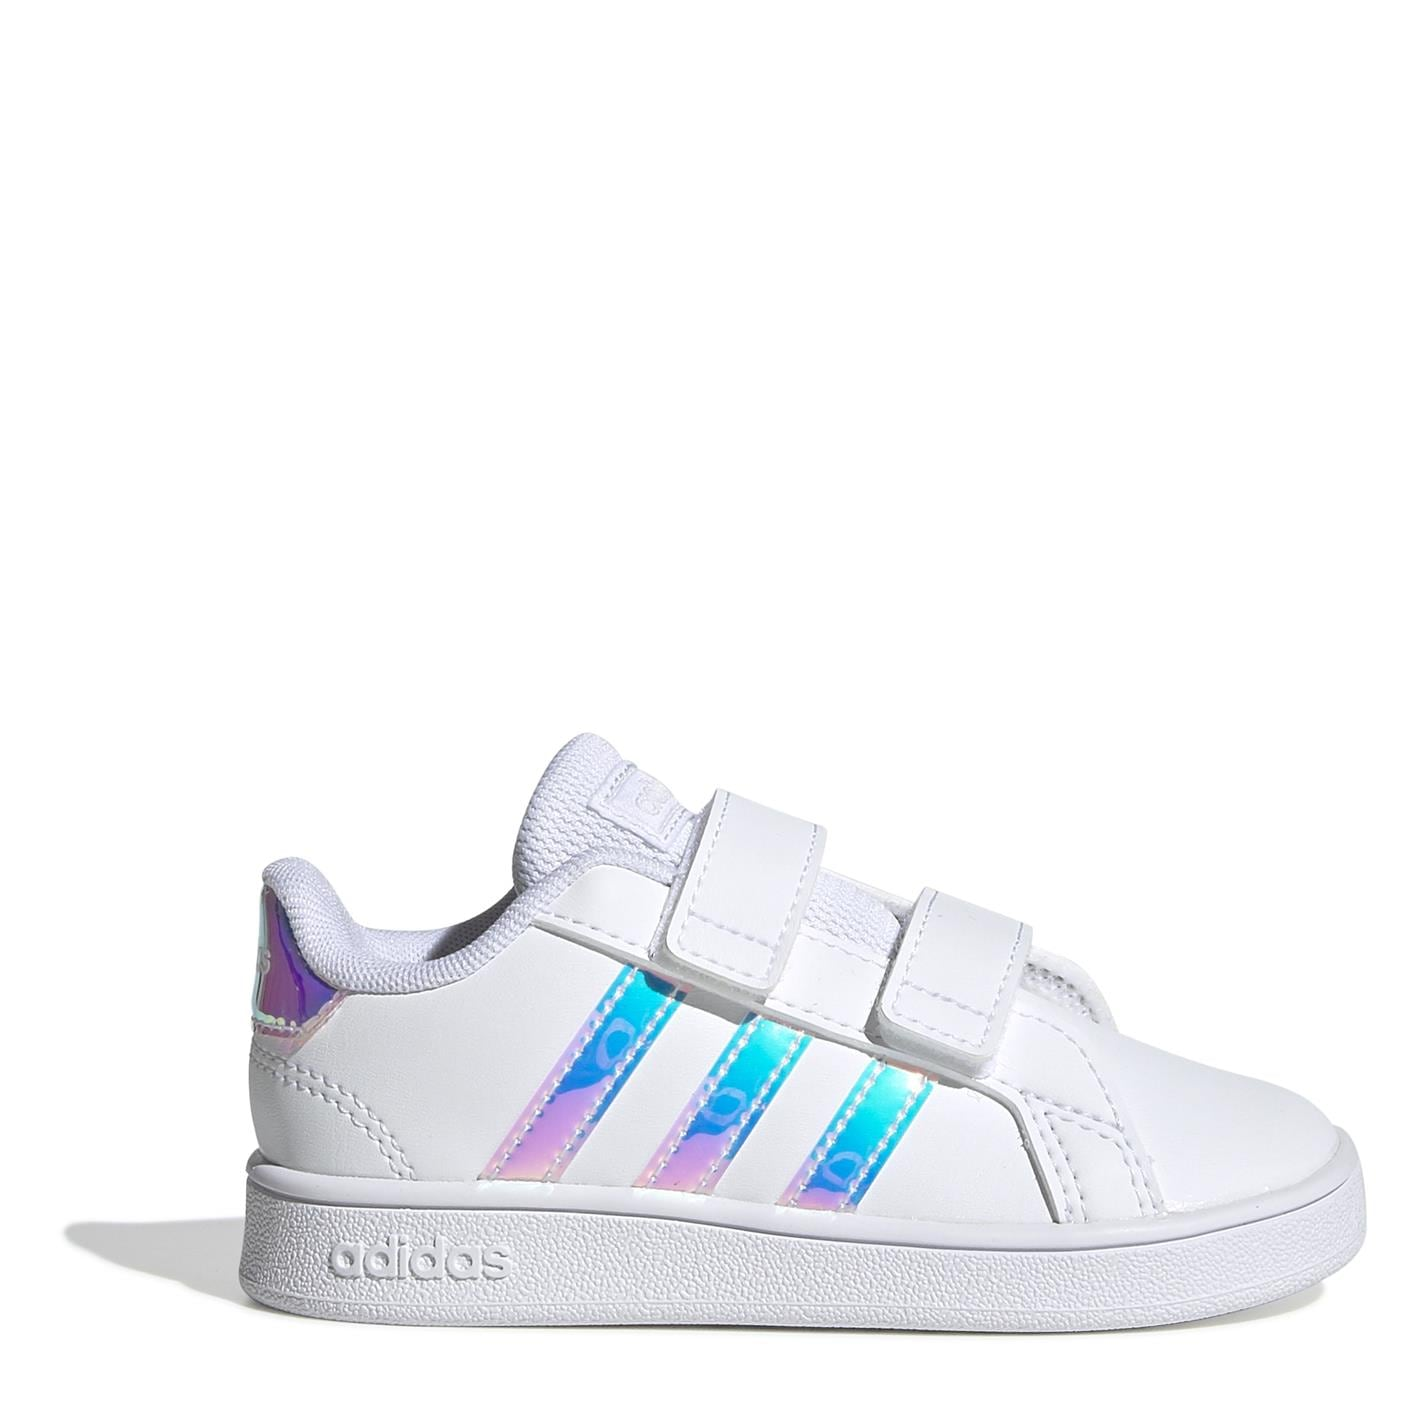 adidas adidas Grand Court Trainers Infant Girls Wht/Iridescent